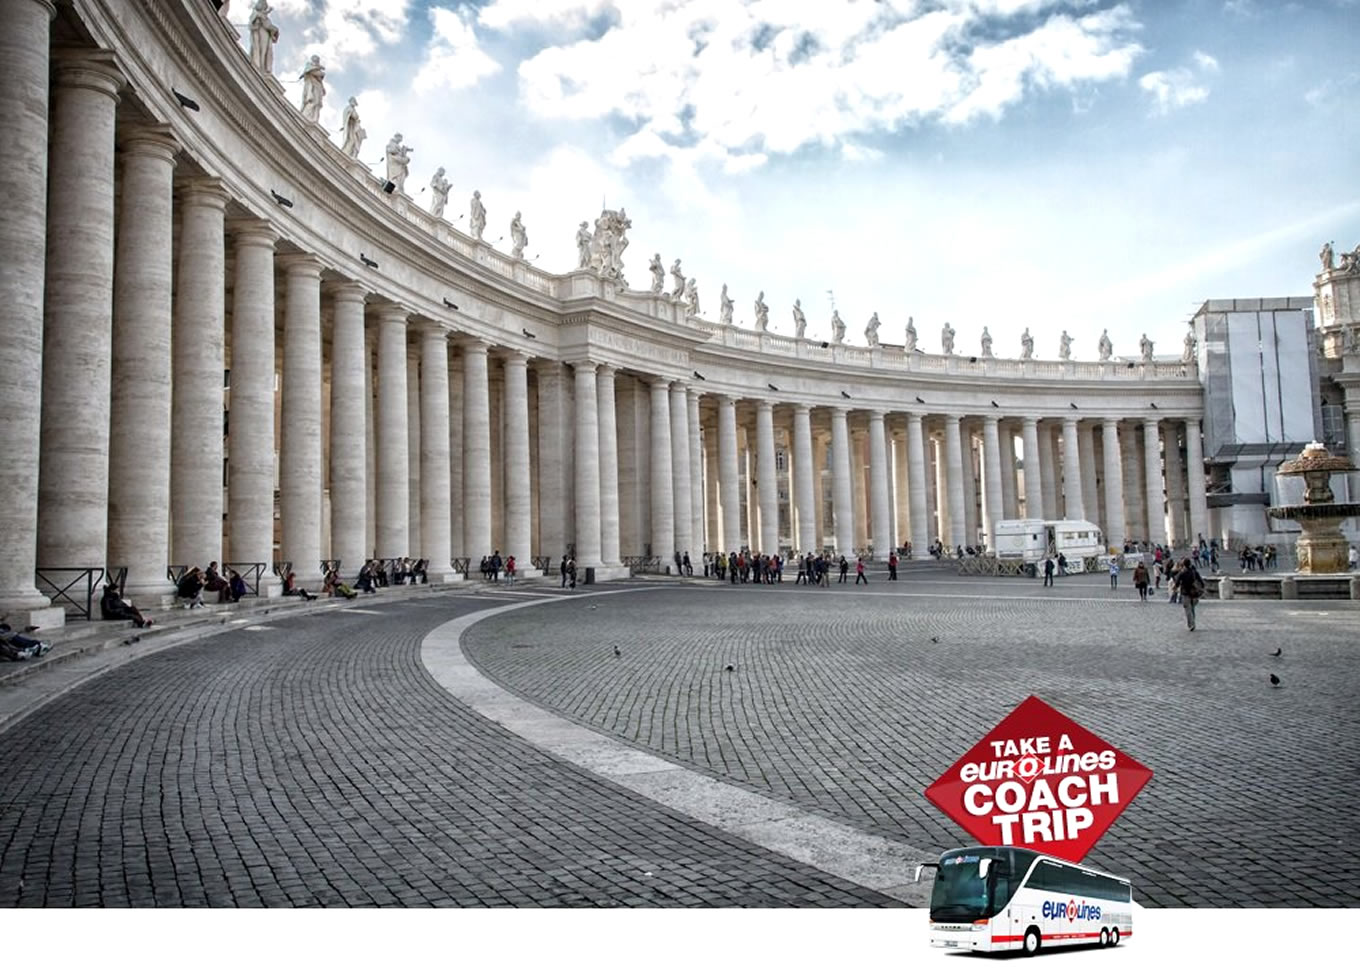 St Pieter Square Vatican Rome Poster of Coach Trip Campaign by Eurolines UK